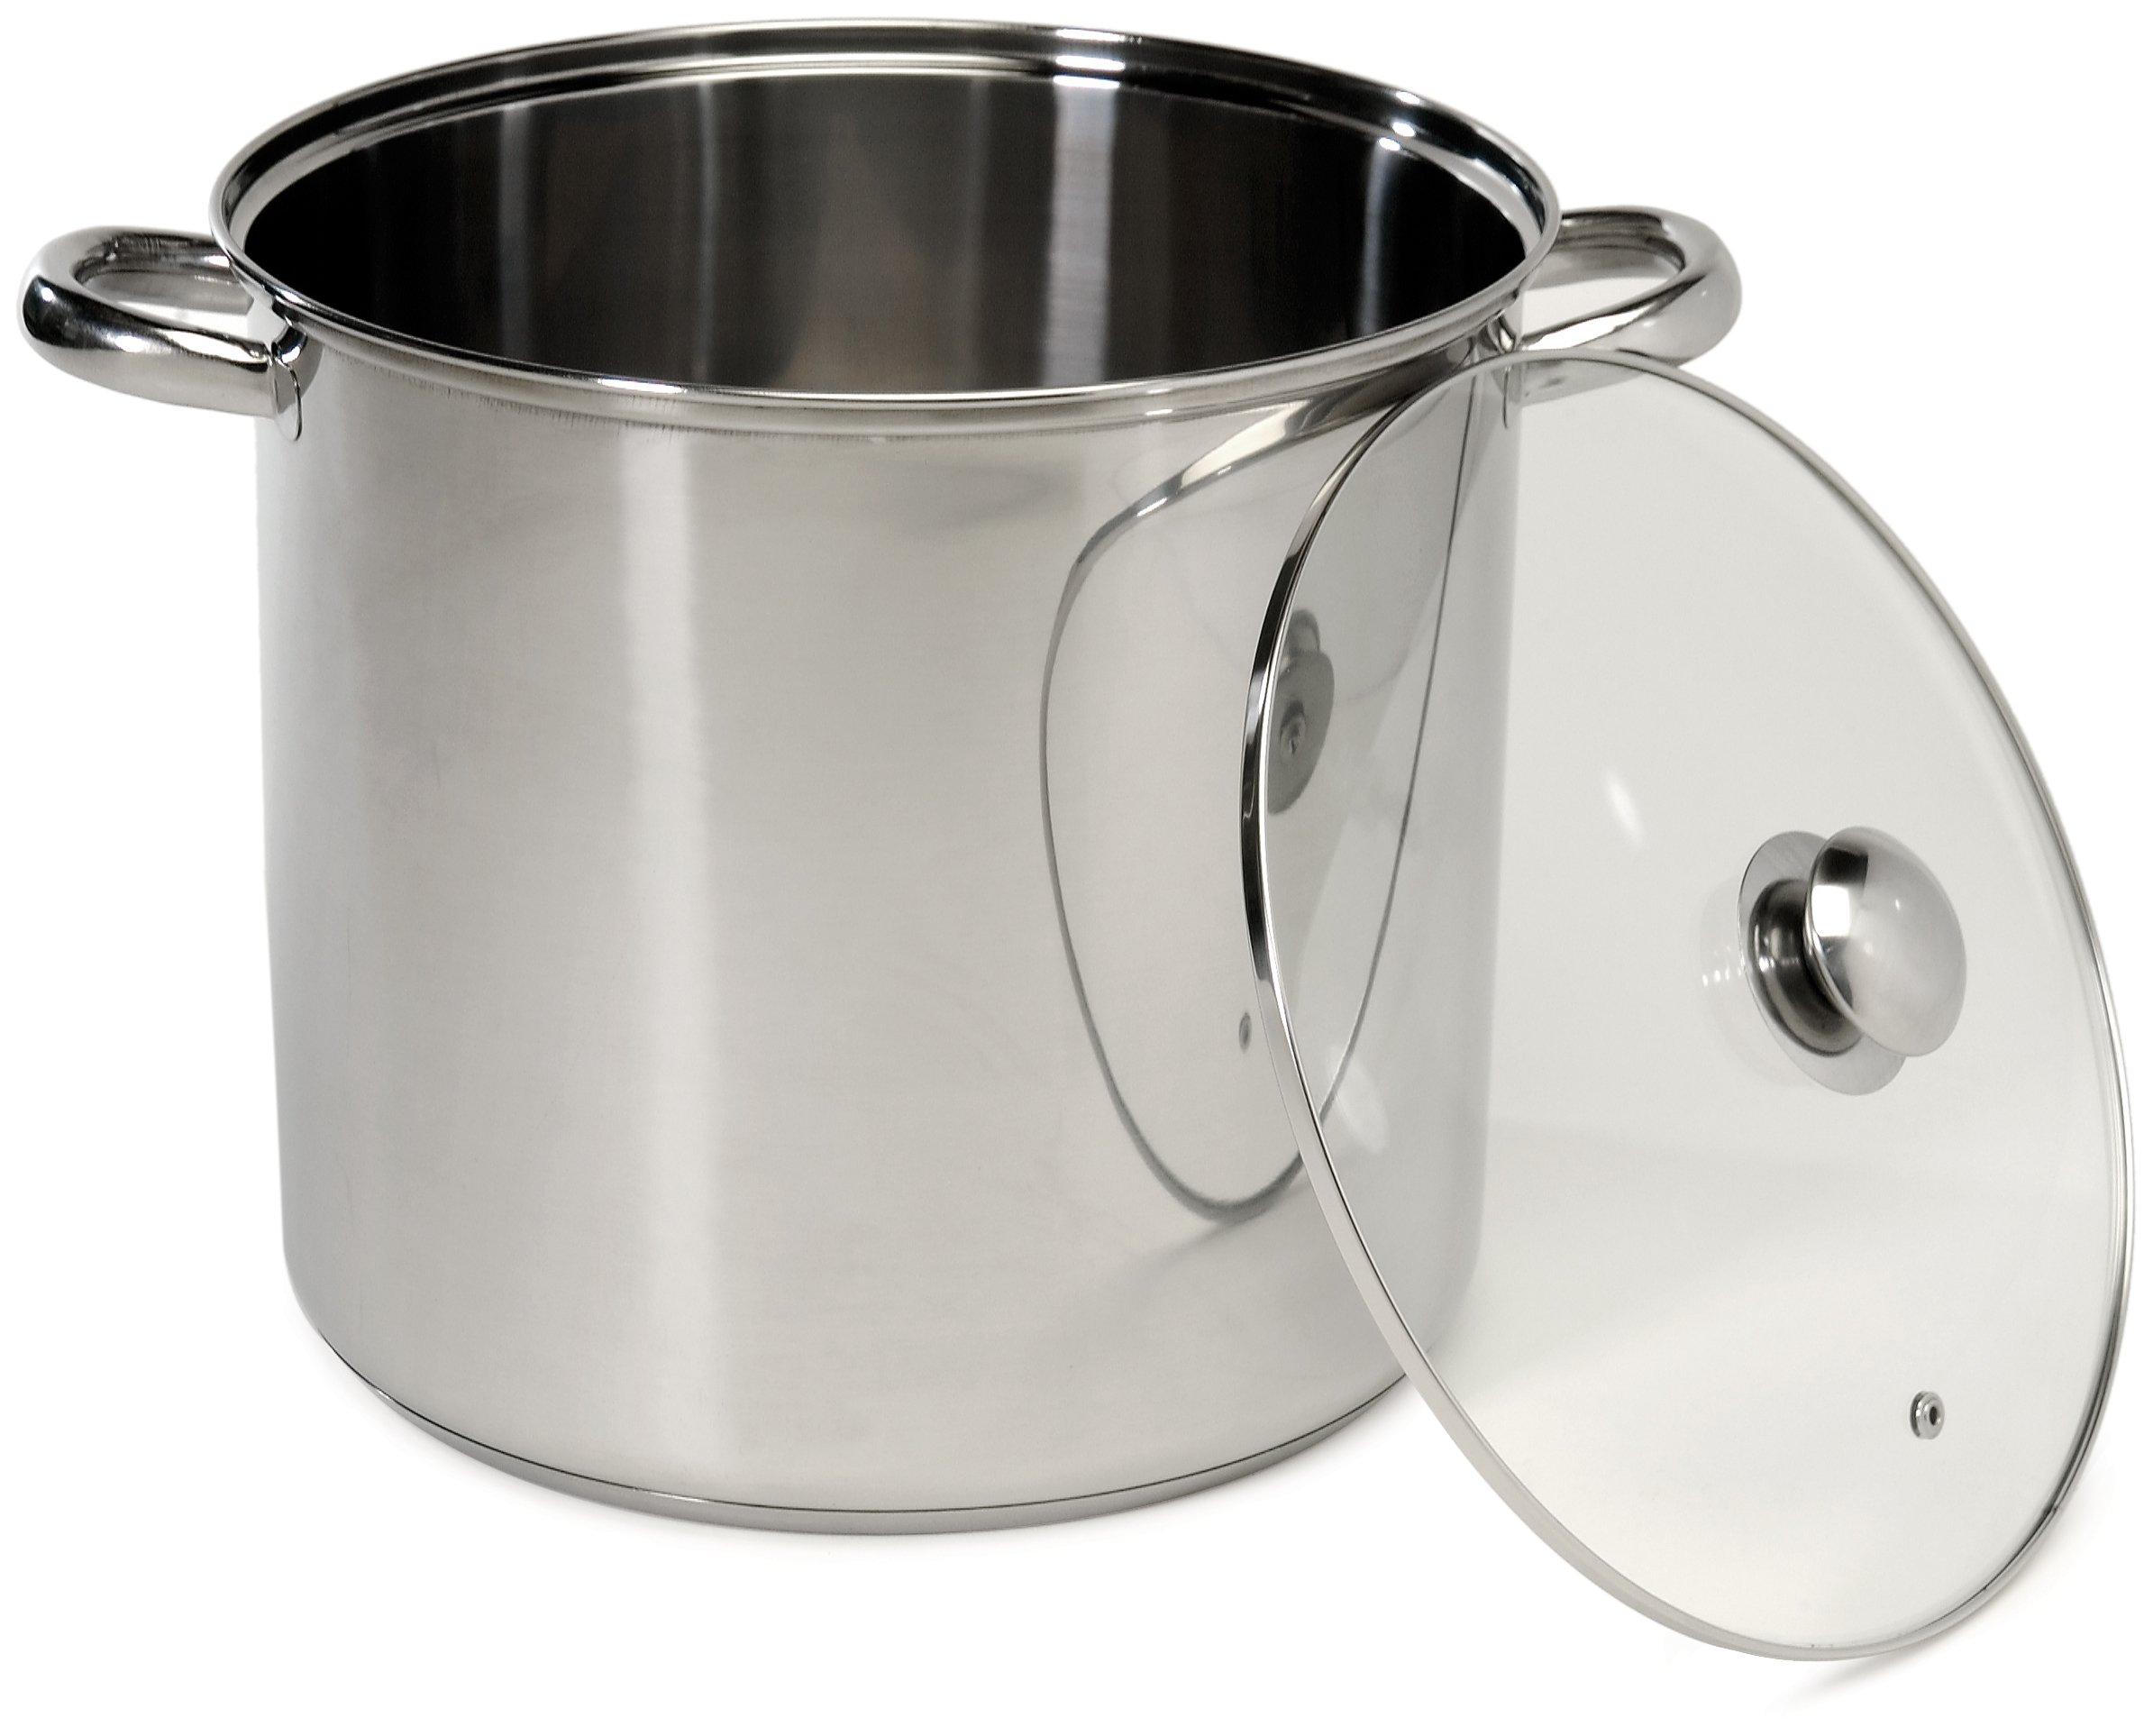 Excelsteel 16 Quart Stainless Steel Stockpot With Encapsulated Base by ExcelSteel